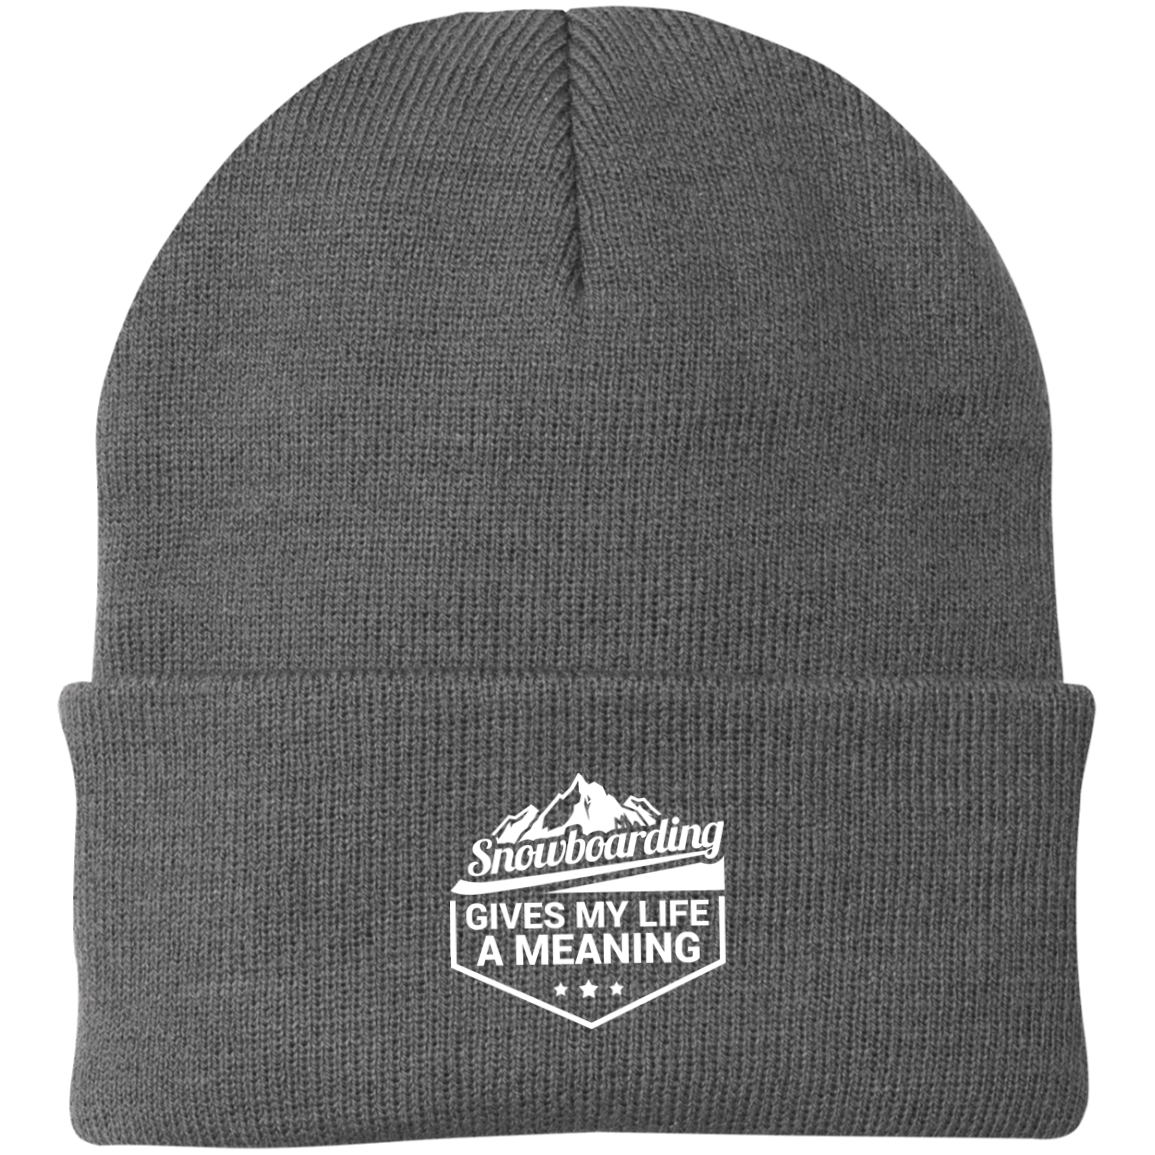 Snowboarding Gives My Life a Meaning Knit Cap - Powderaddicts